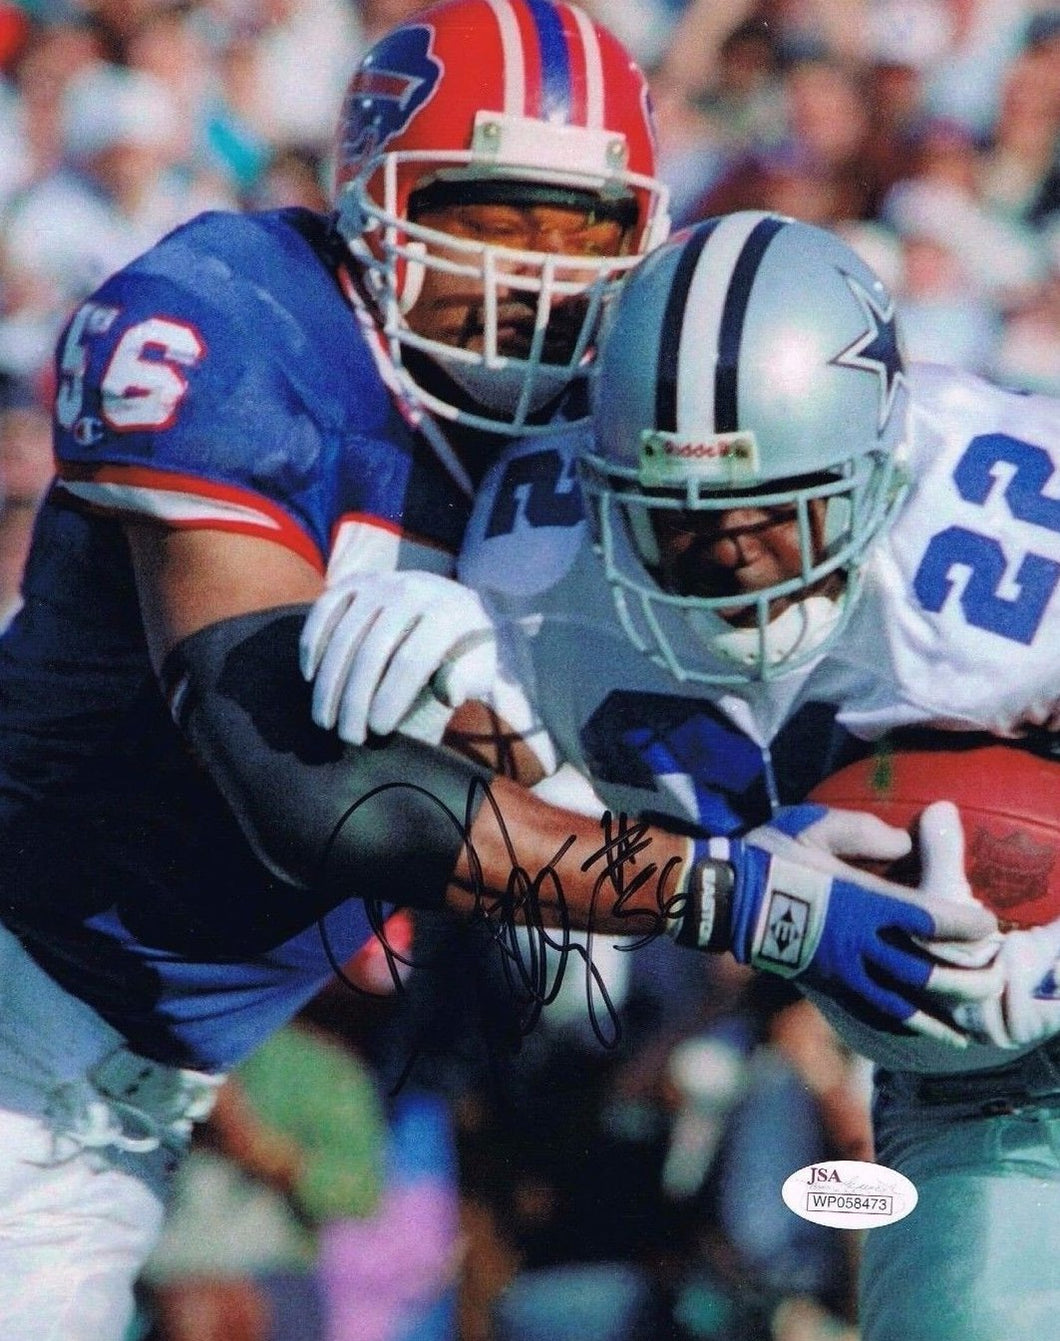 buffalo bills, wvu football, darryl talley autograph